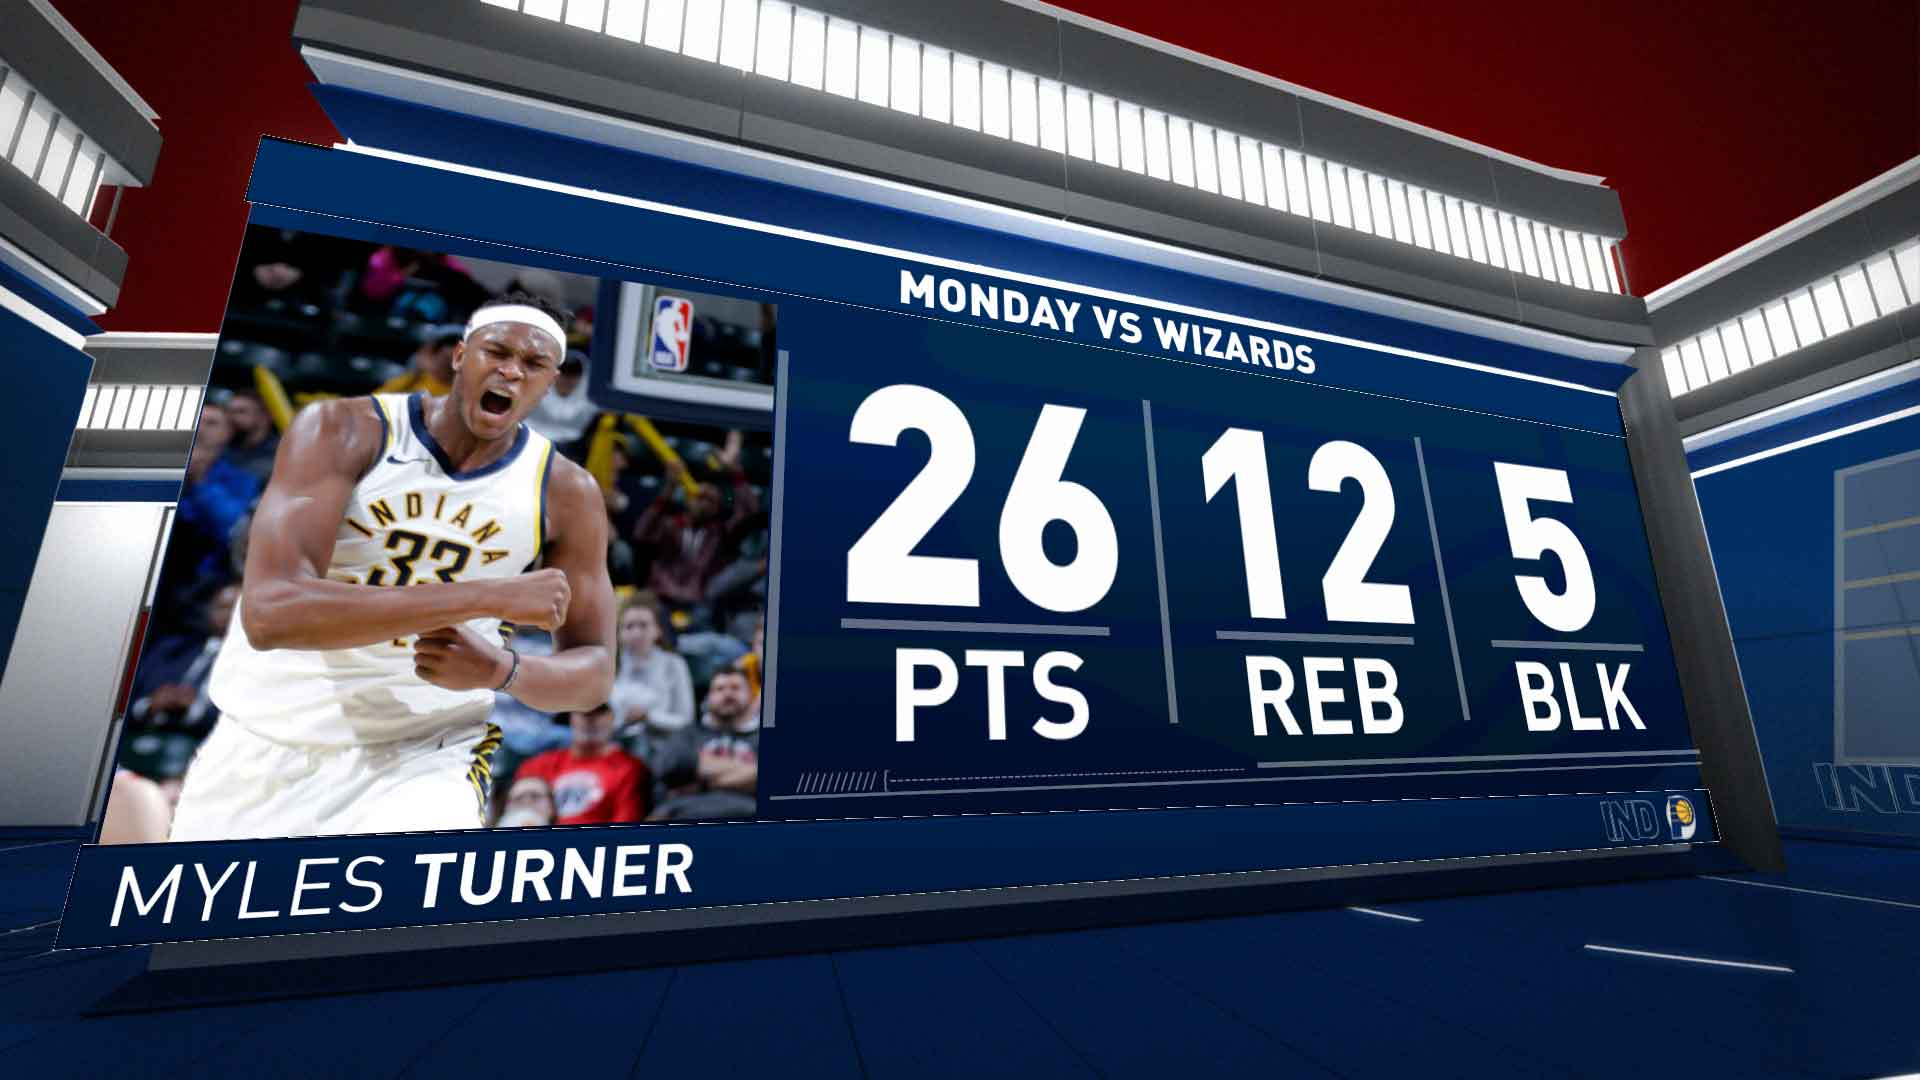 Turner Scores 26 in Win over Wizards